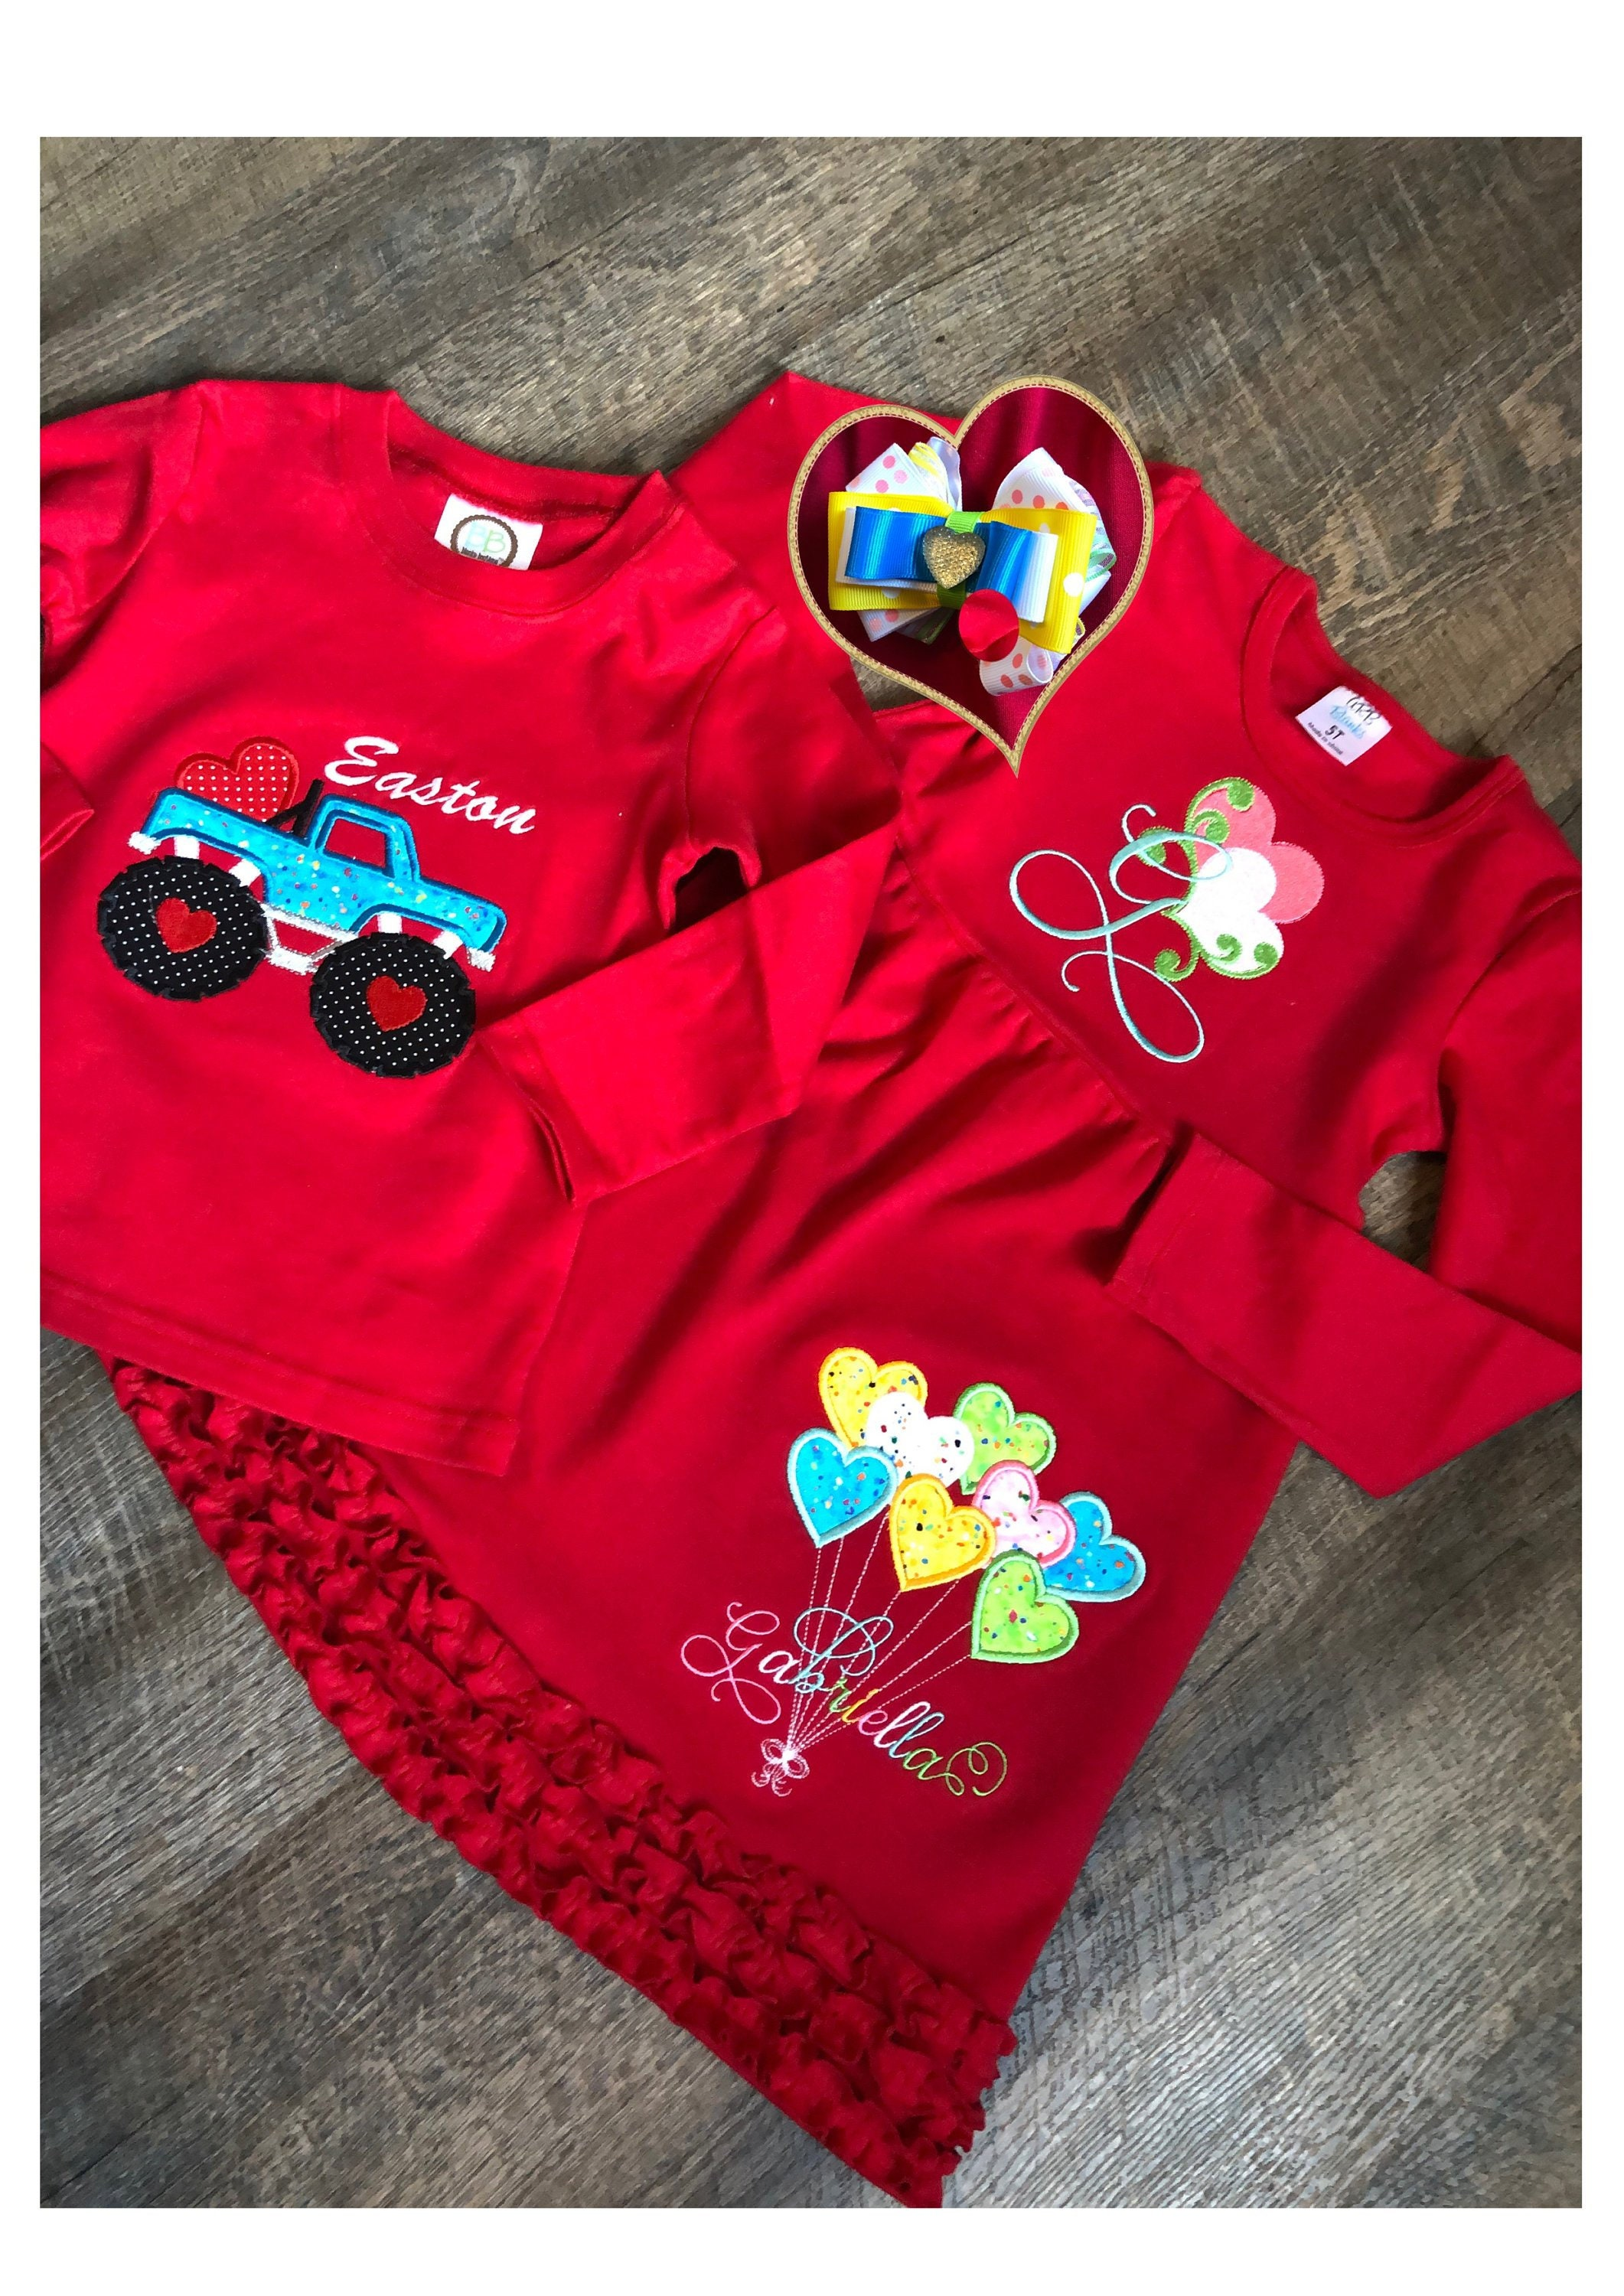 Toddler Sibling Valentines Day Outfit